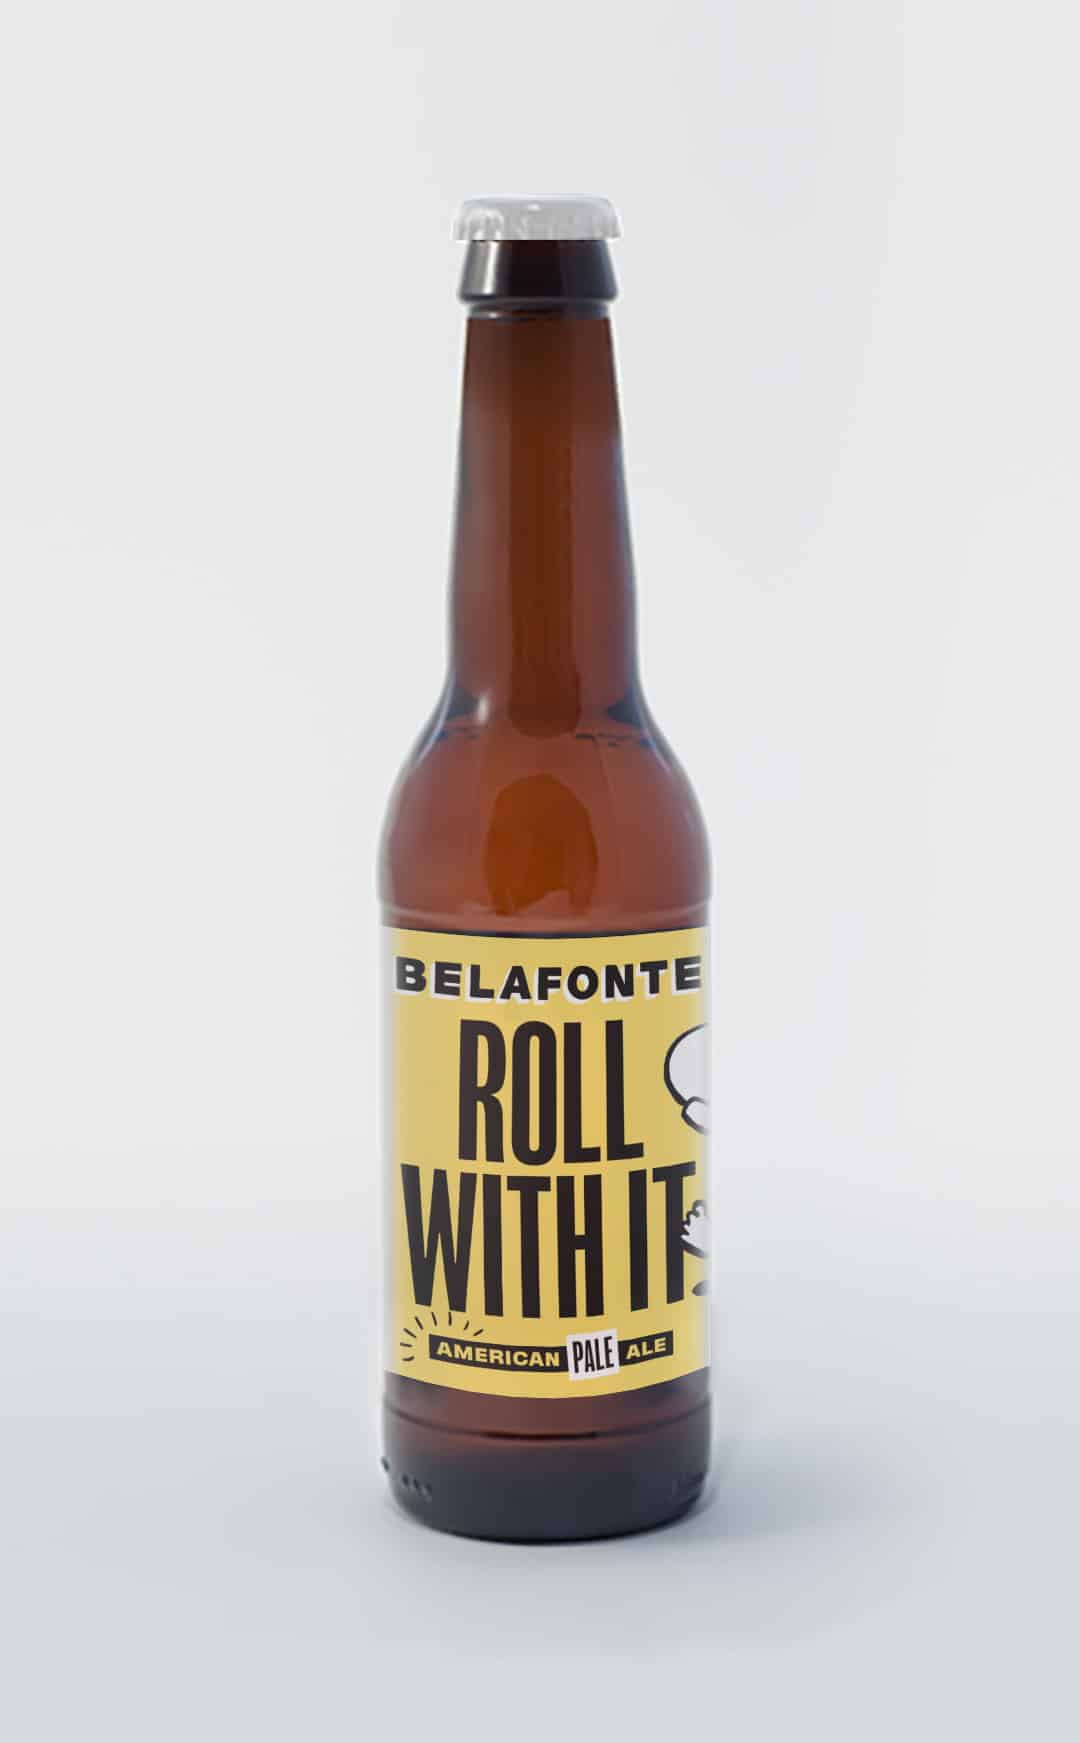 Bière Artisanale Belafonte Brewing Co - Roll With It